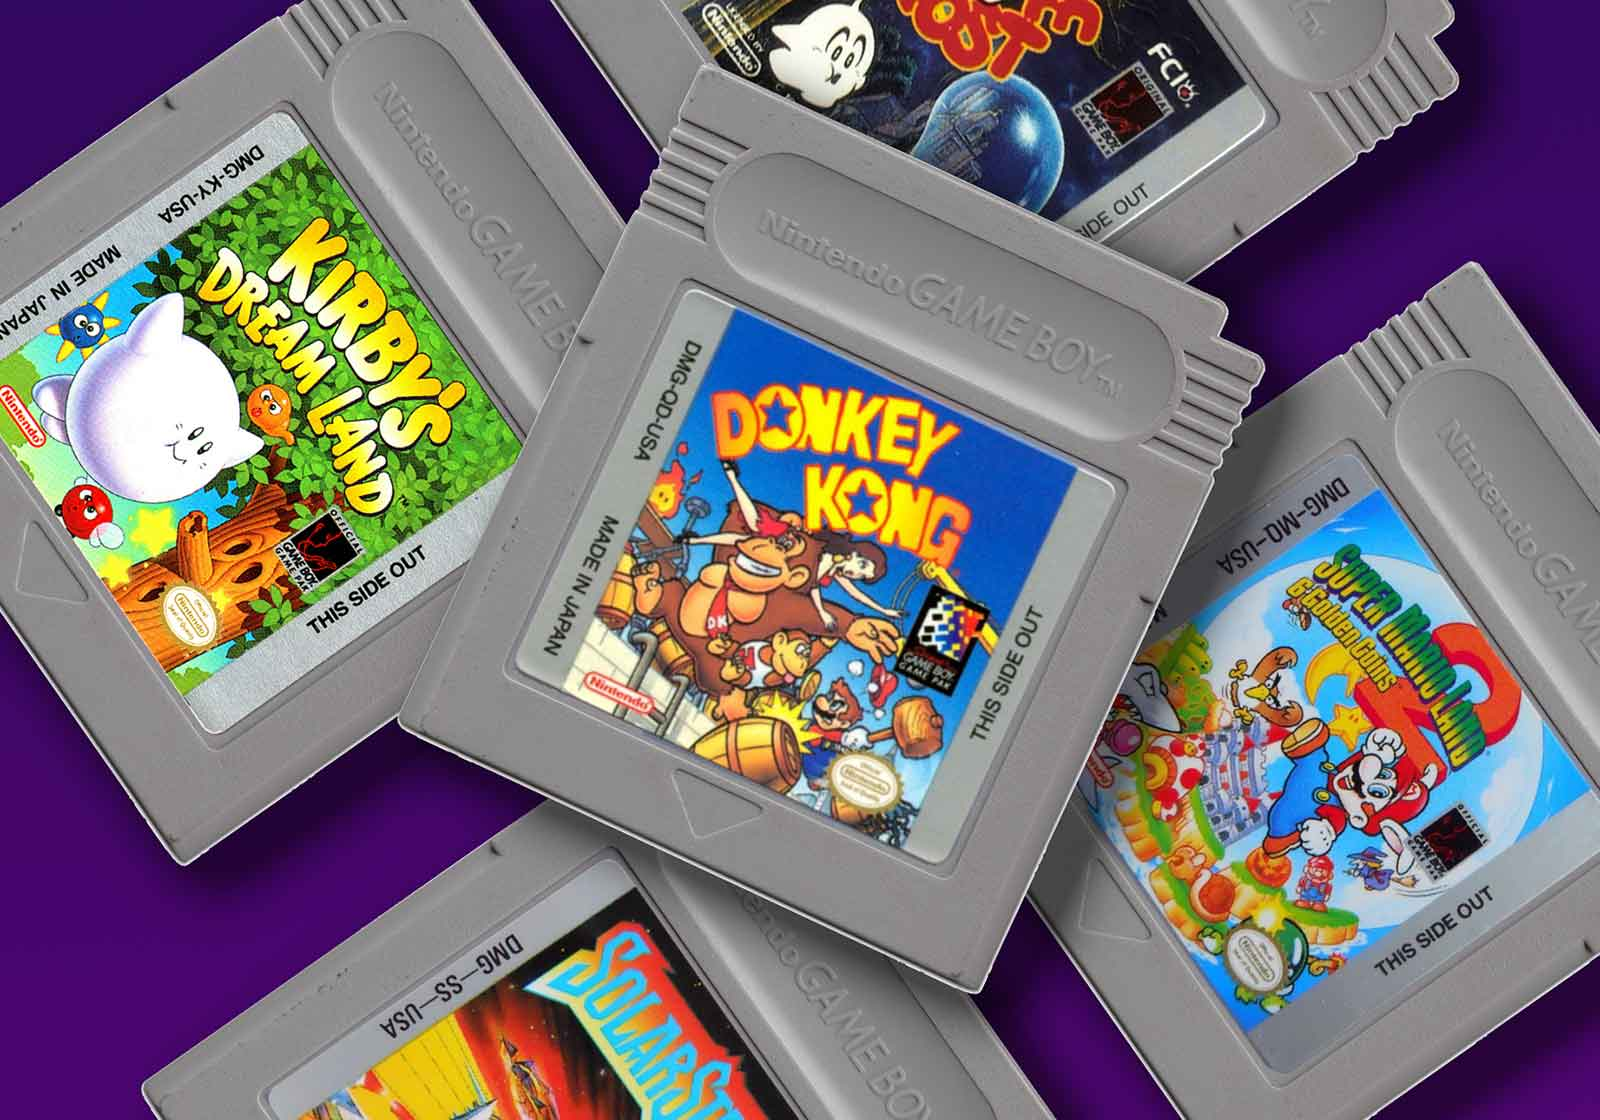 Nintendo could add Game Boy, Game Boy Color titles to Switch Online service 'really soon'